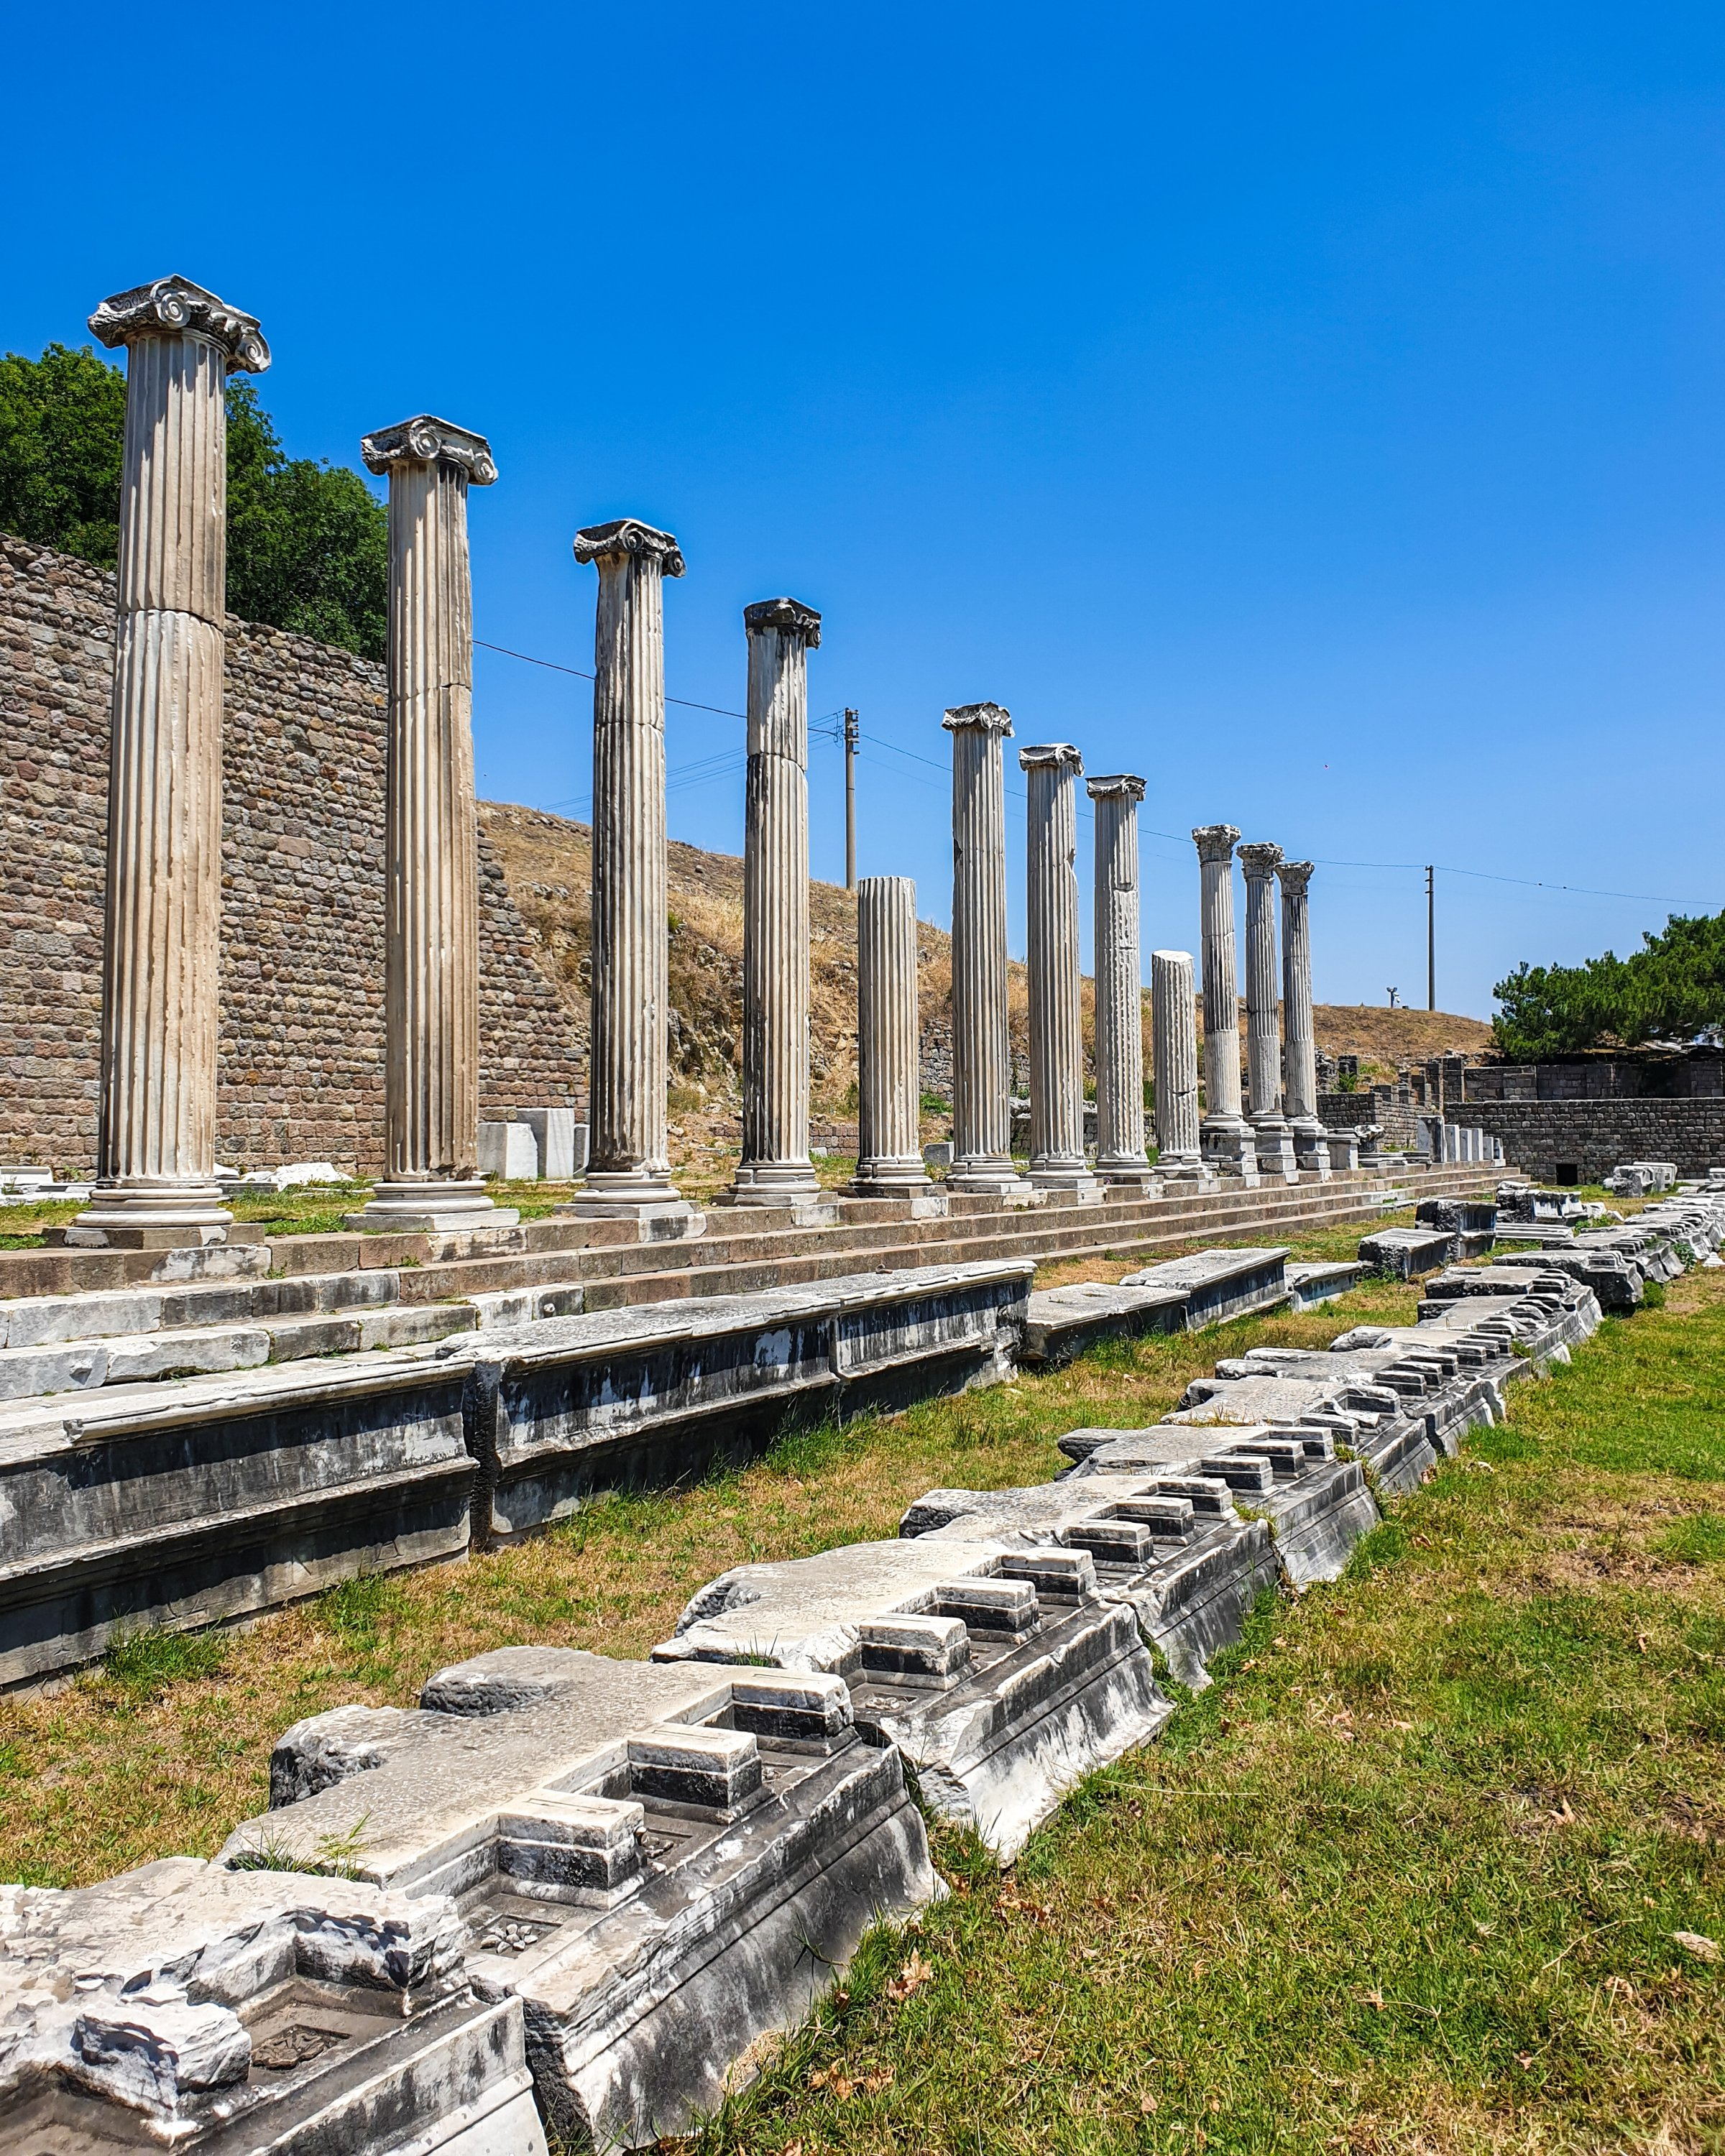 The colonnaded street in front of the theater at Asklepion, Izmir. (Photo by Argun Konuk)